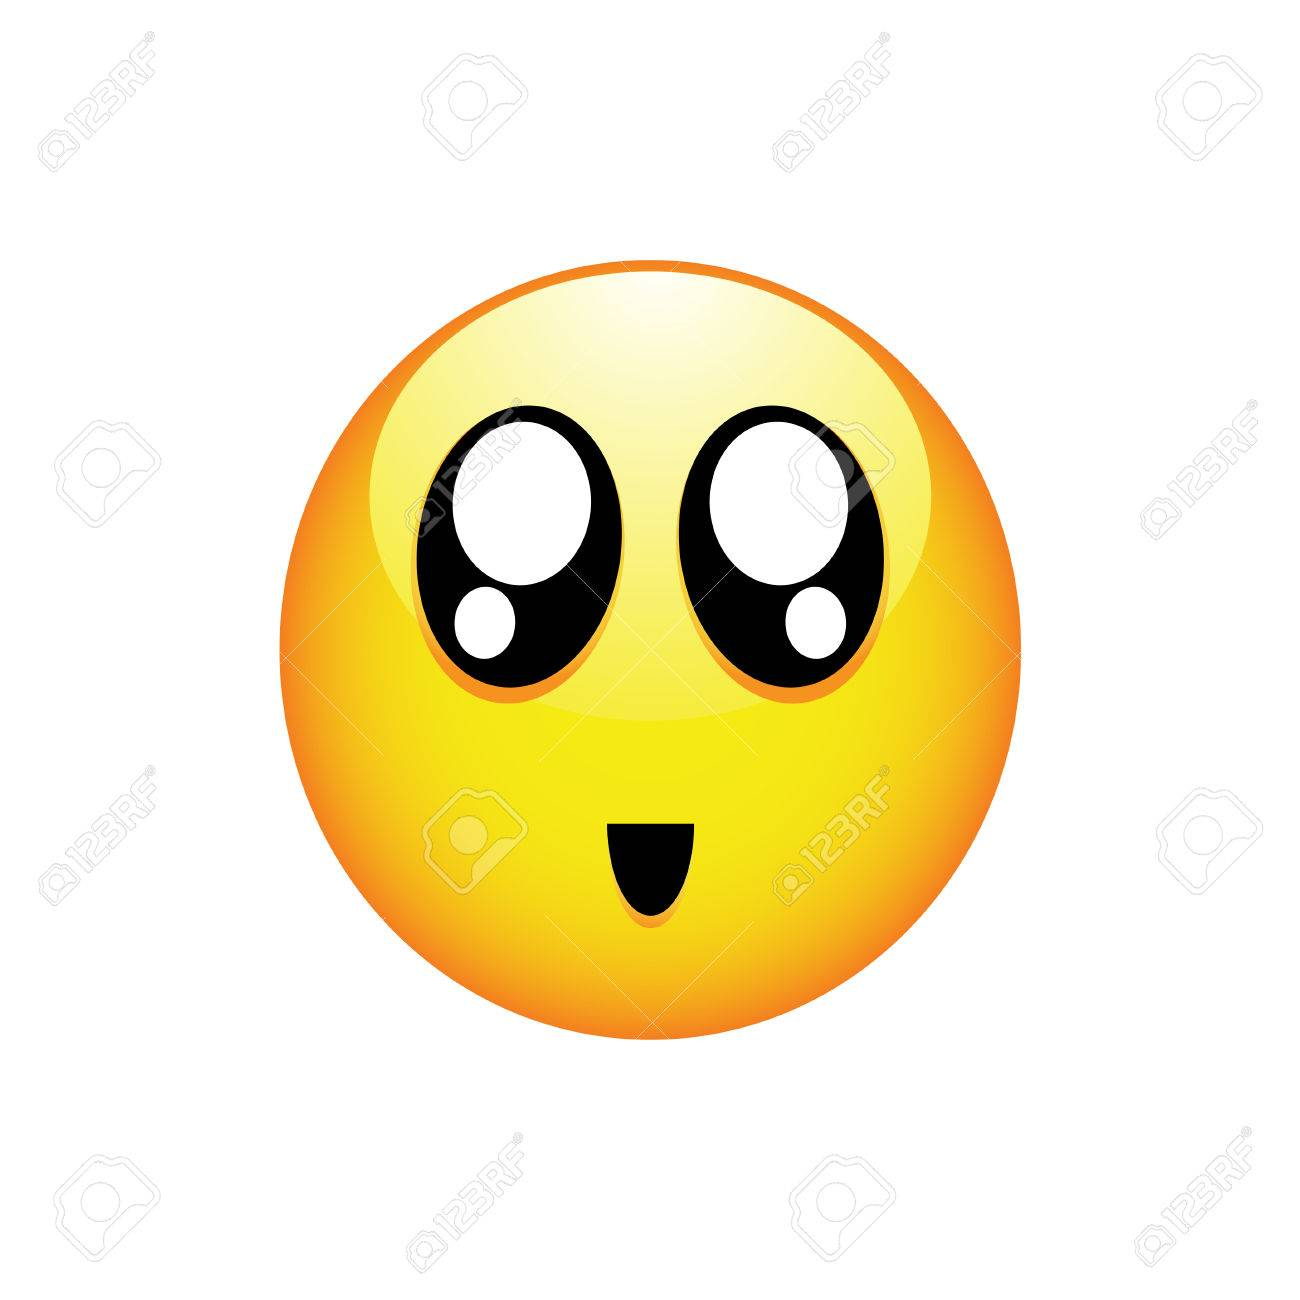 1300x1300 Smiling Smiley With Black Eyes And Rosy Cheeks. Vector